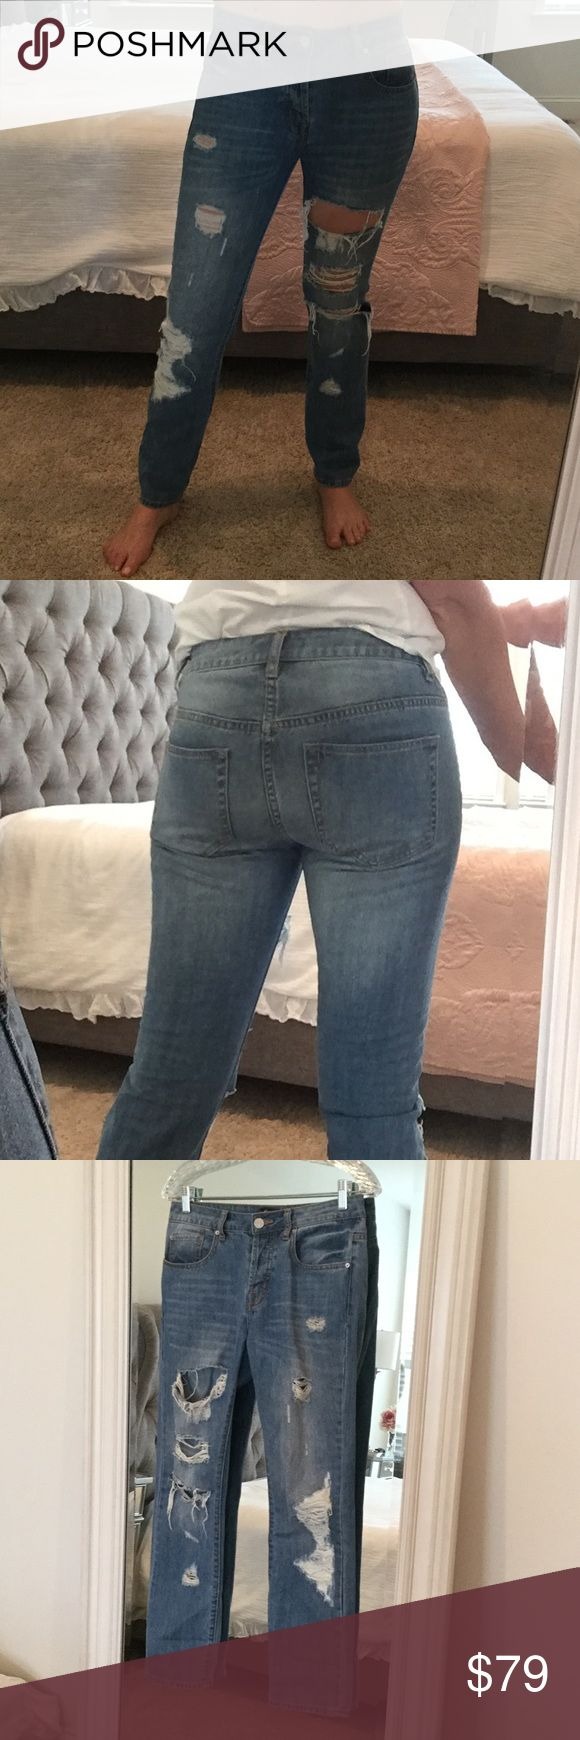 Nasty Gal boot legged distressed jeans As seen on instagram bloggers such as Emily Ann Gemma. Super popular Jeans. I feel they run small. Worn a handful of times and in excellent used condition from a smoke free home. Nasty Gal Jeans Boot Cut